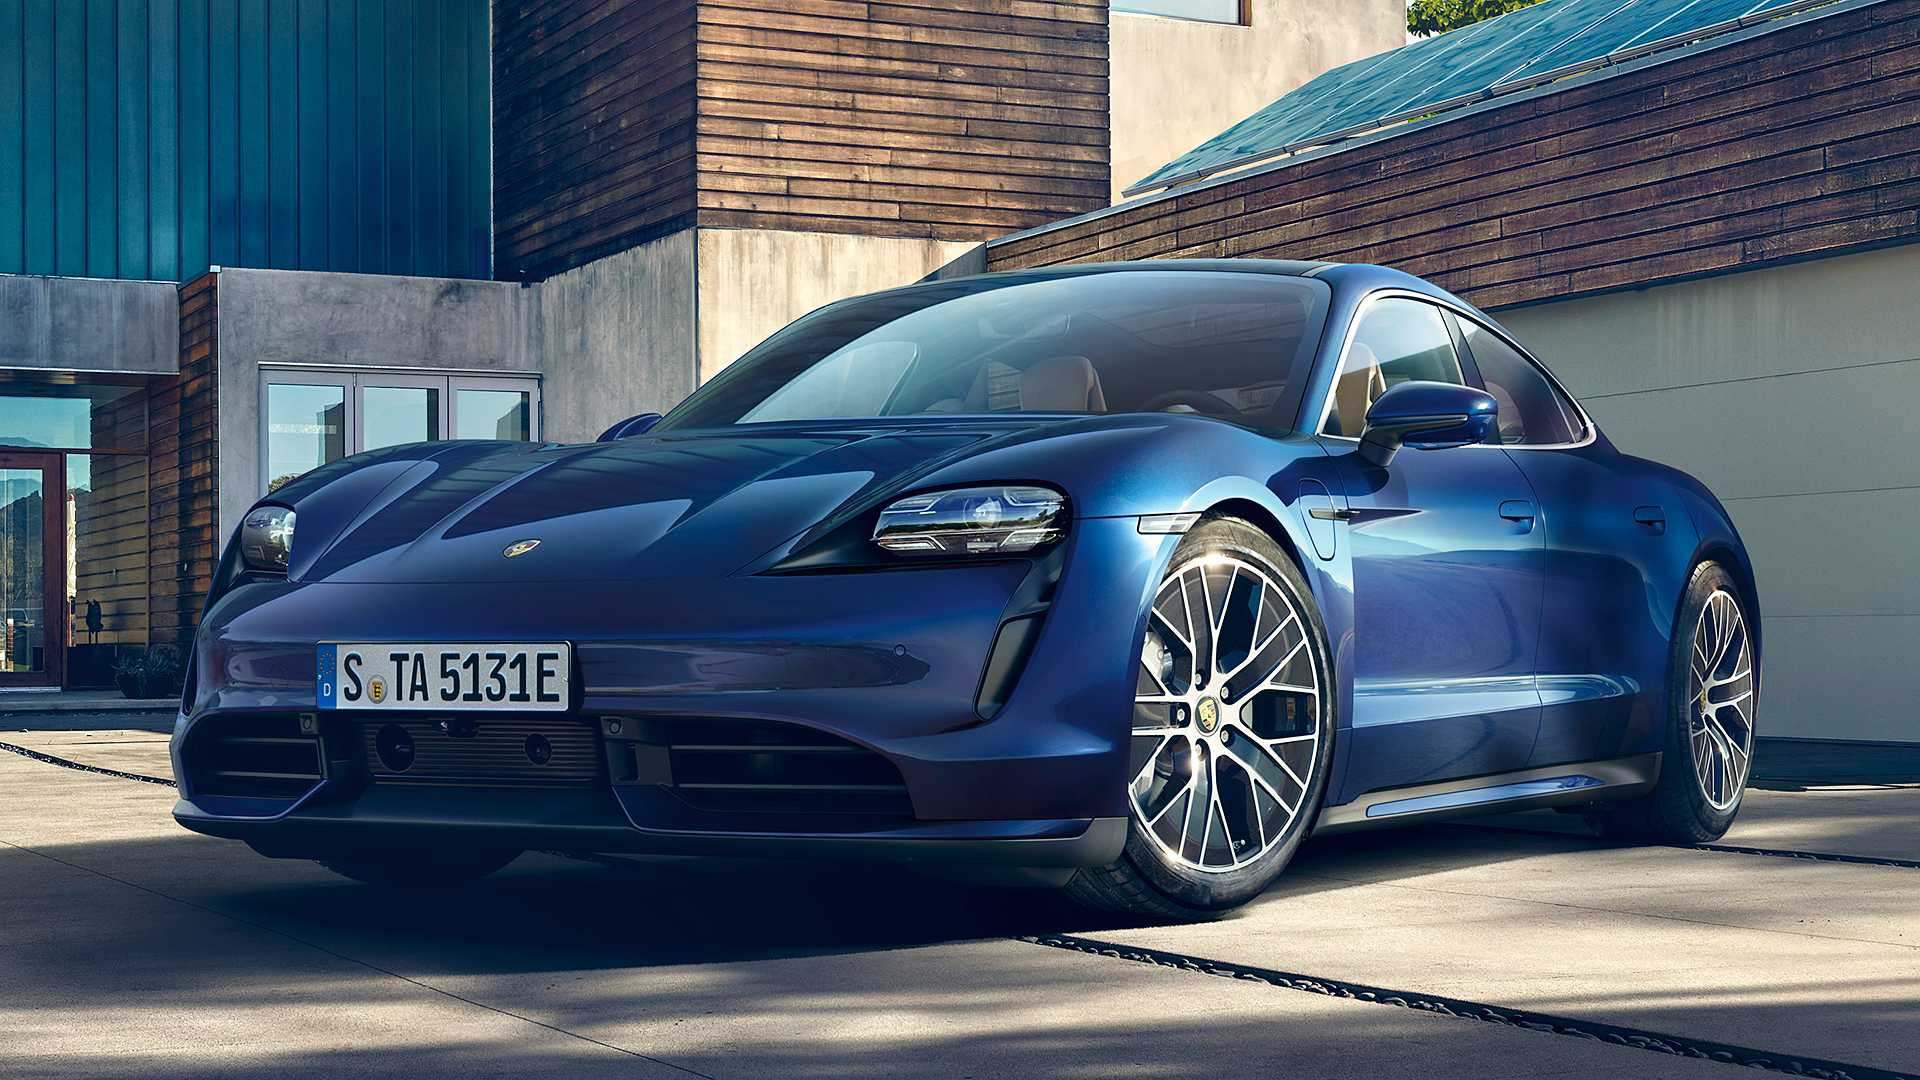 Best Looking Car Wallpaper Porsche Taycan Launched With A Starting Price Of 150 900